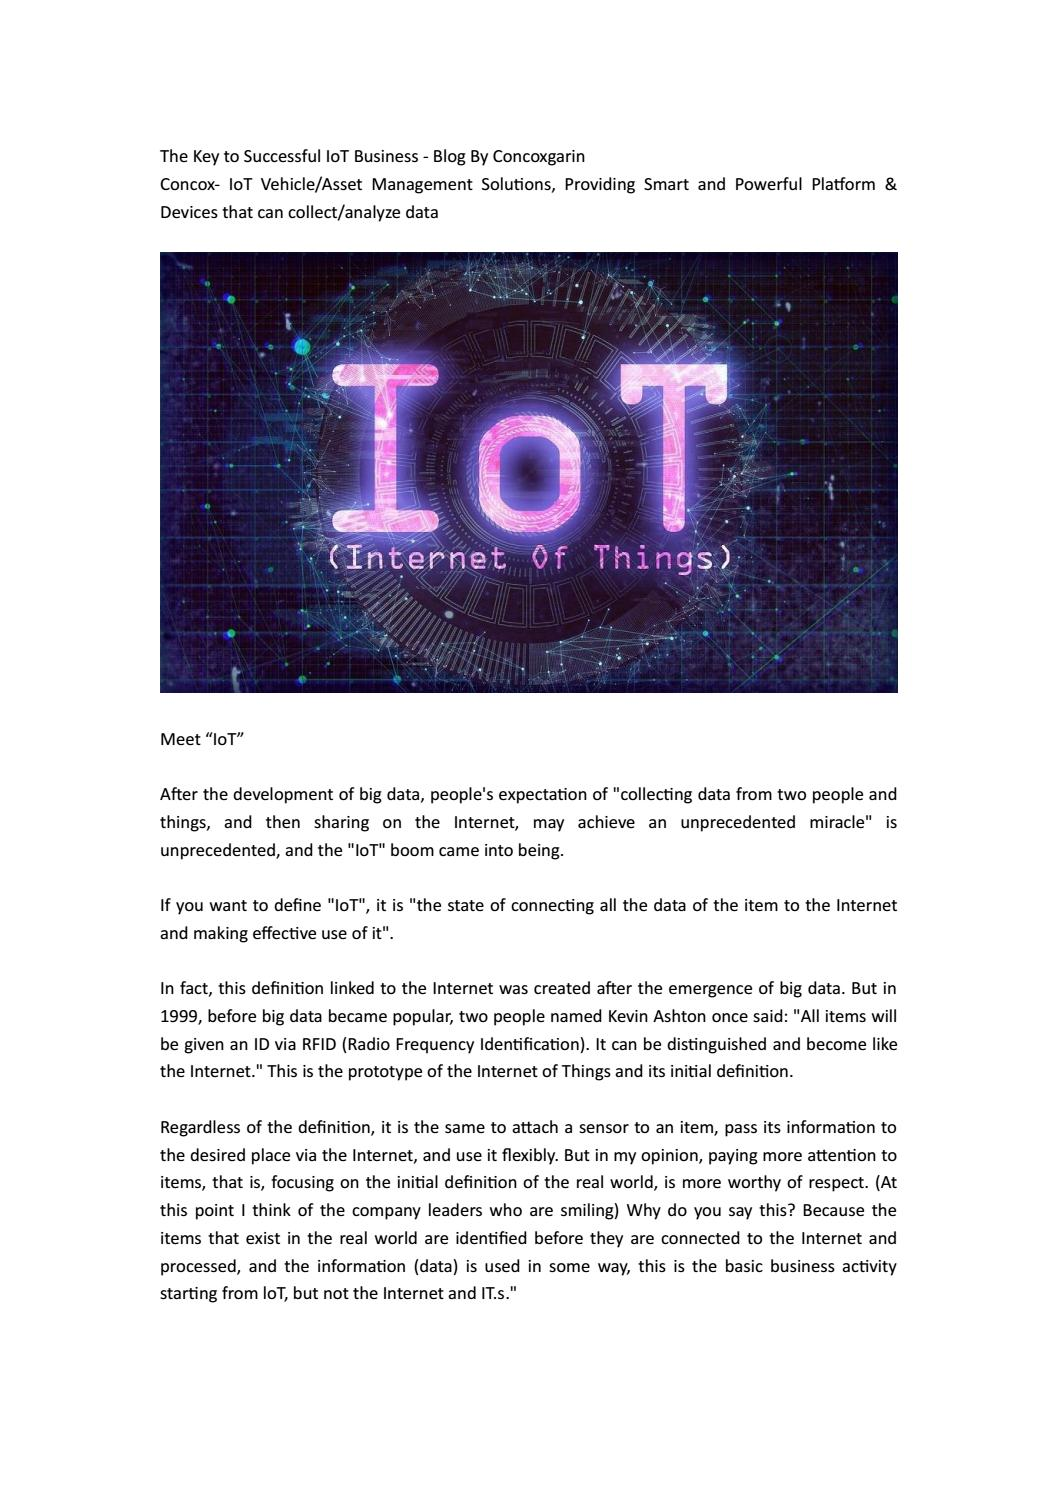 The Key to Successful IoT Business - Blog By Concoxgarin by